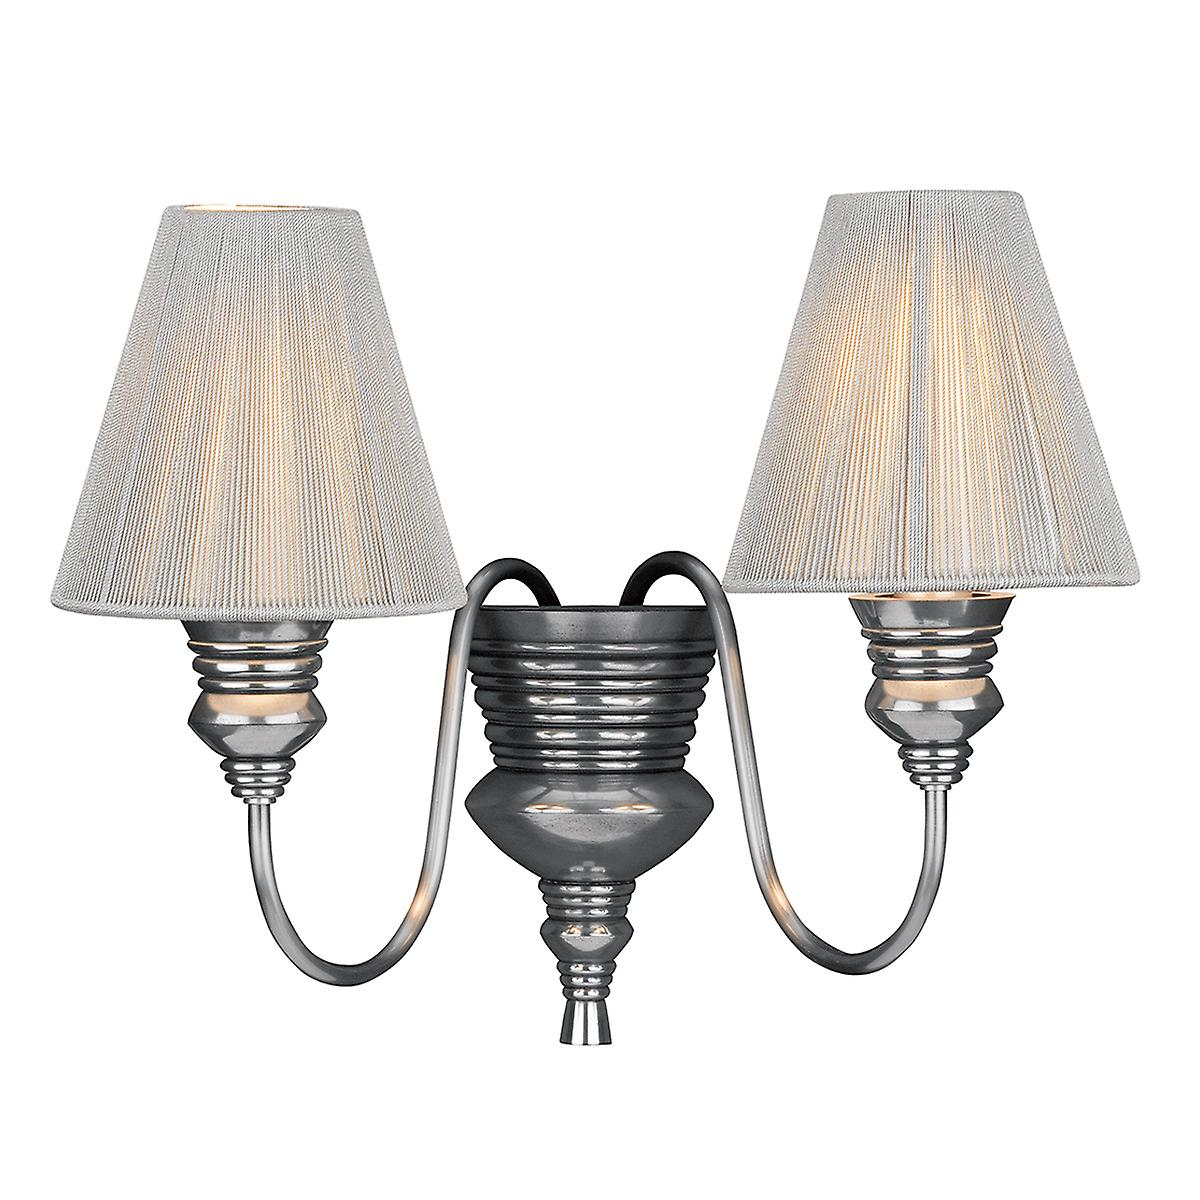 David Hunt DOR0967 Doreen Double Wall Light In Pewter With S115 String Shades